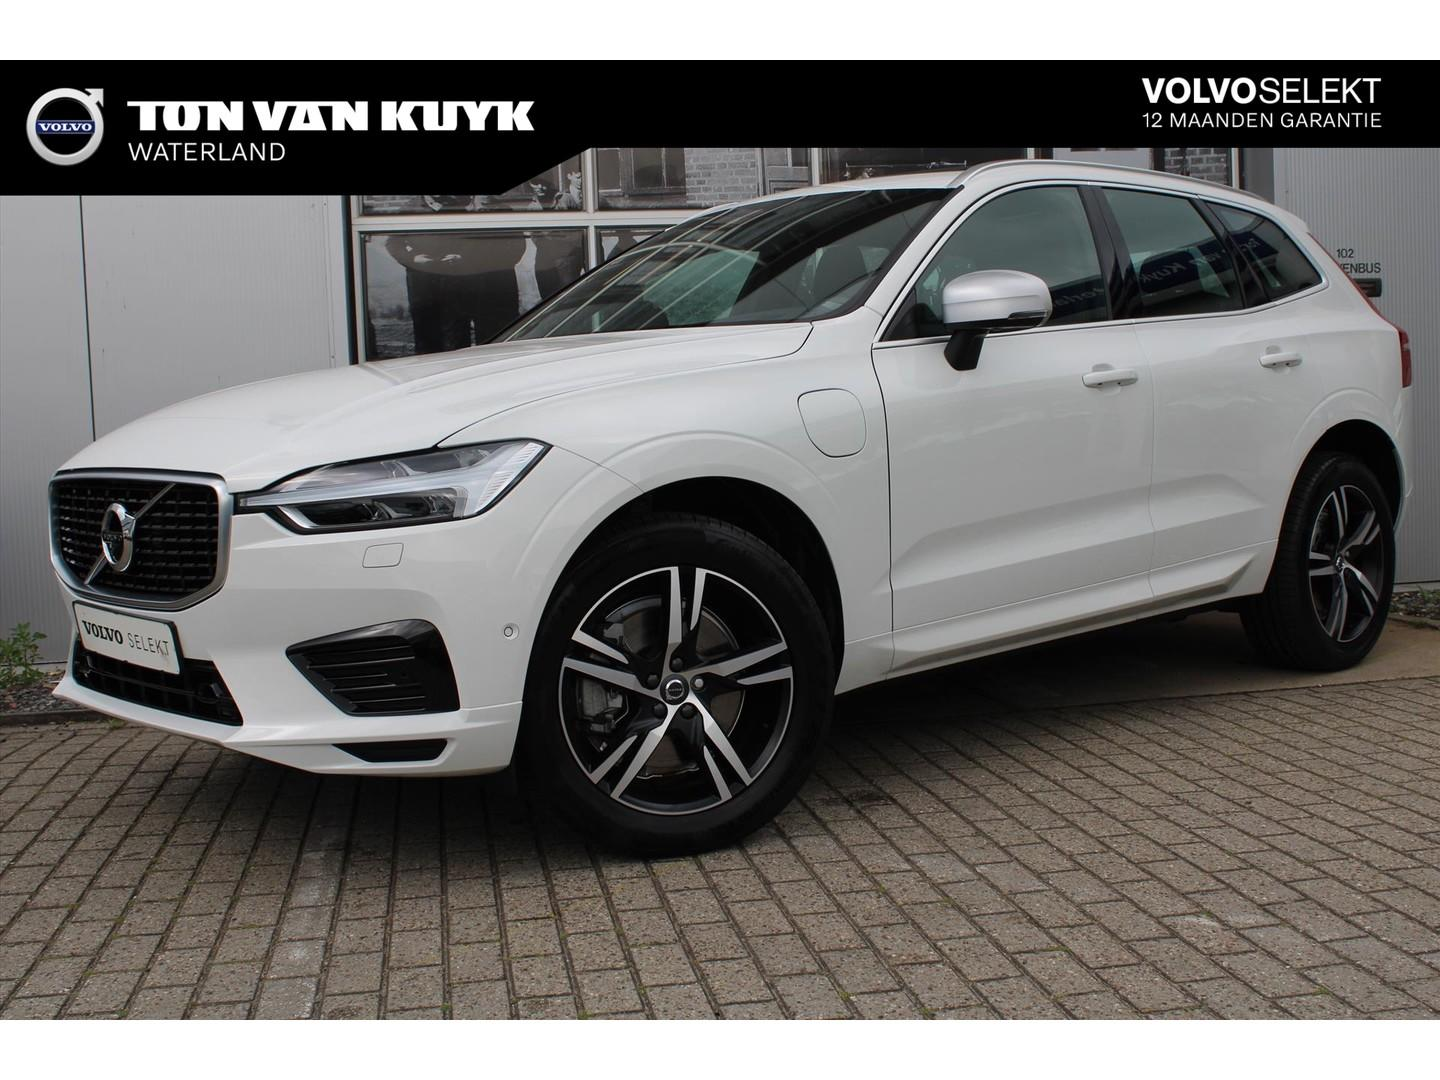 Volvo Xc60 T8 te 390pk r-design awd automaat / business pack connect